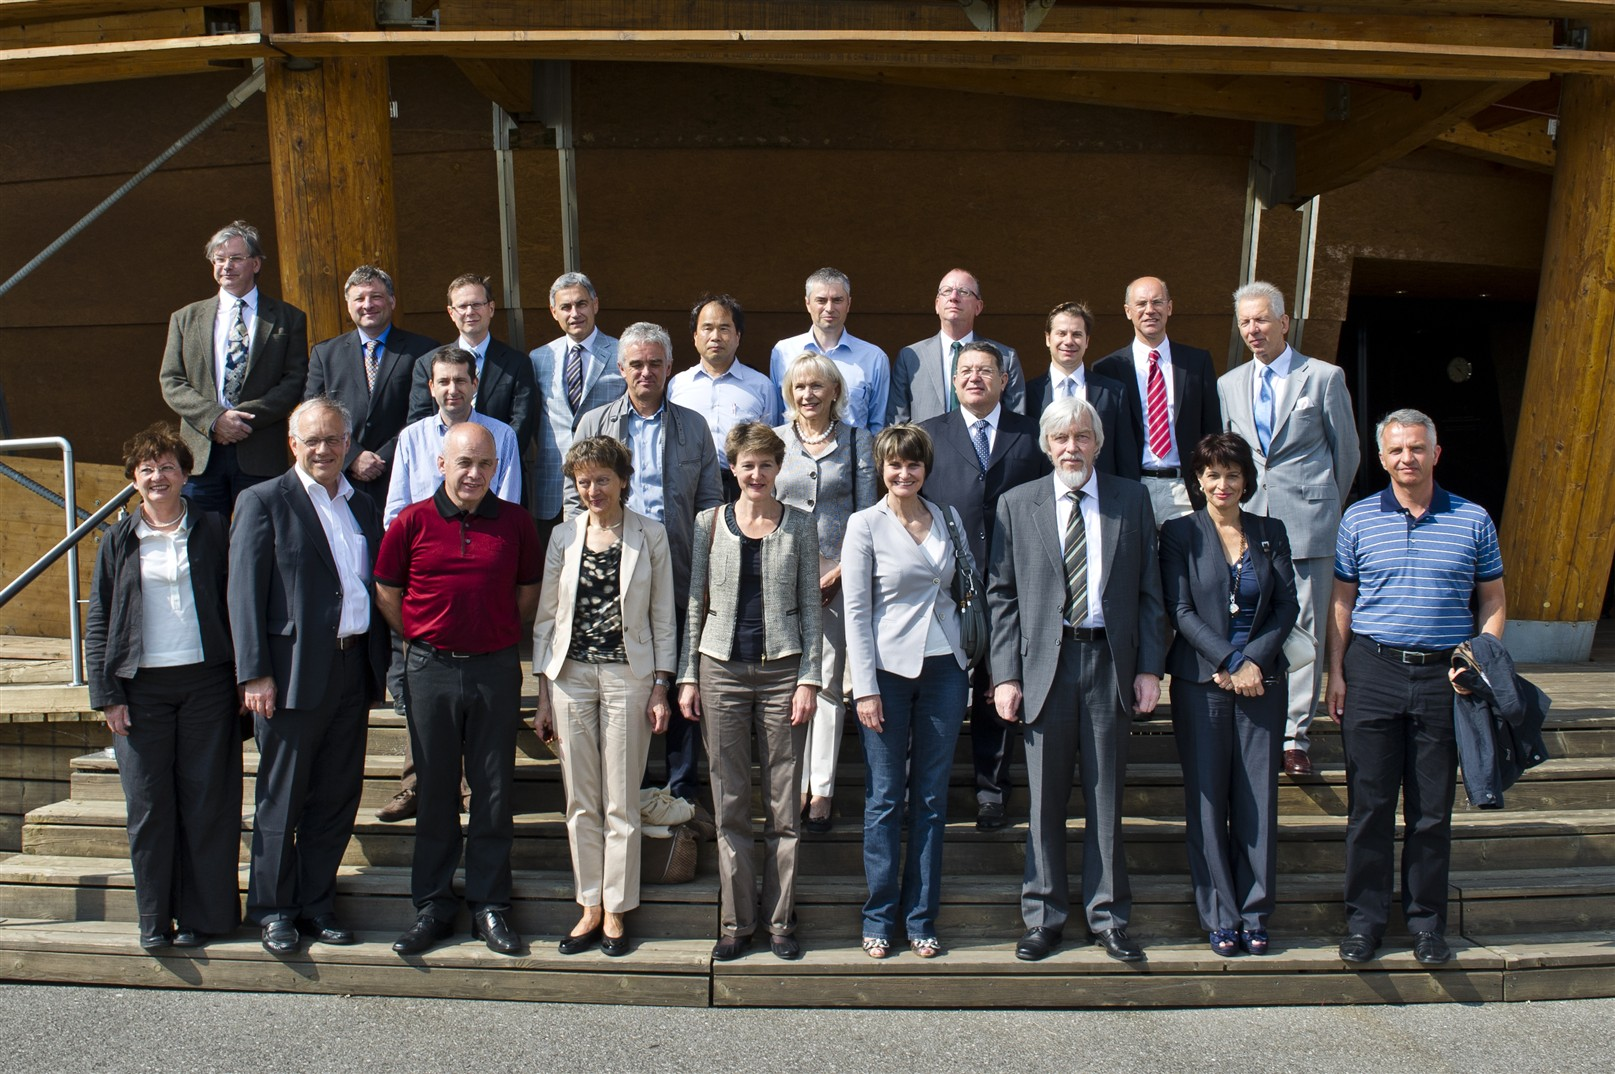 7 July 2011 - Members of the Swiss Federal Council (front row) in front of the Globe of Science and Innovation.